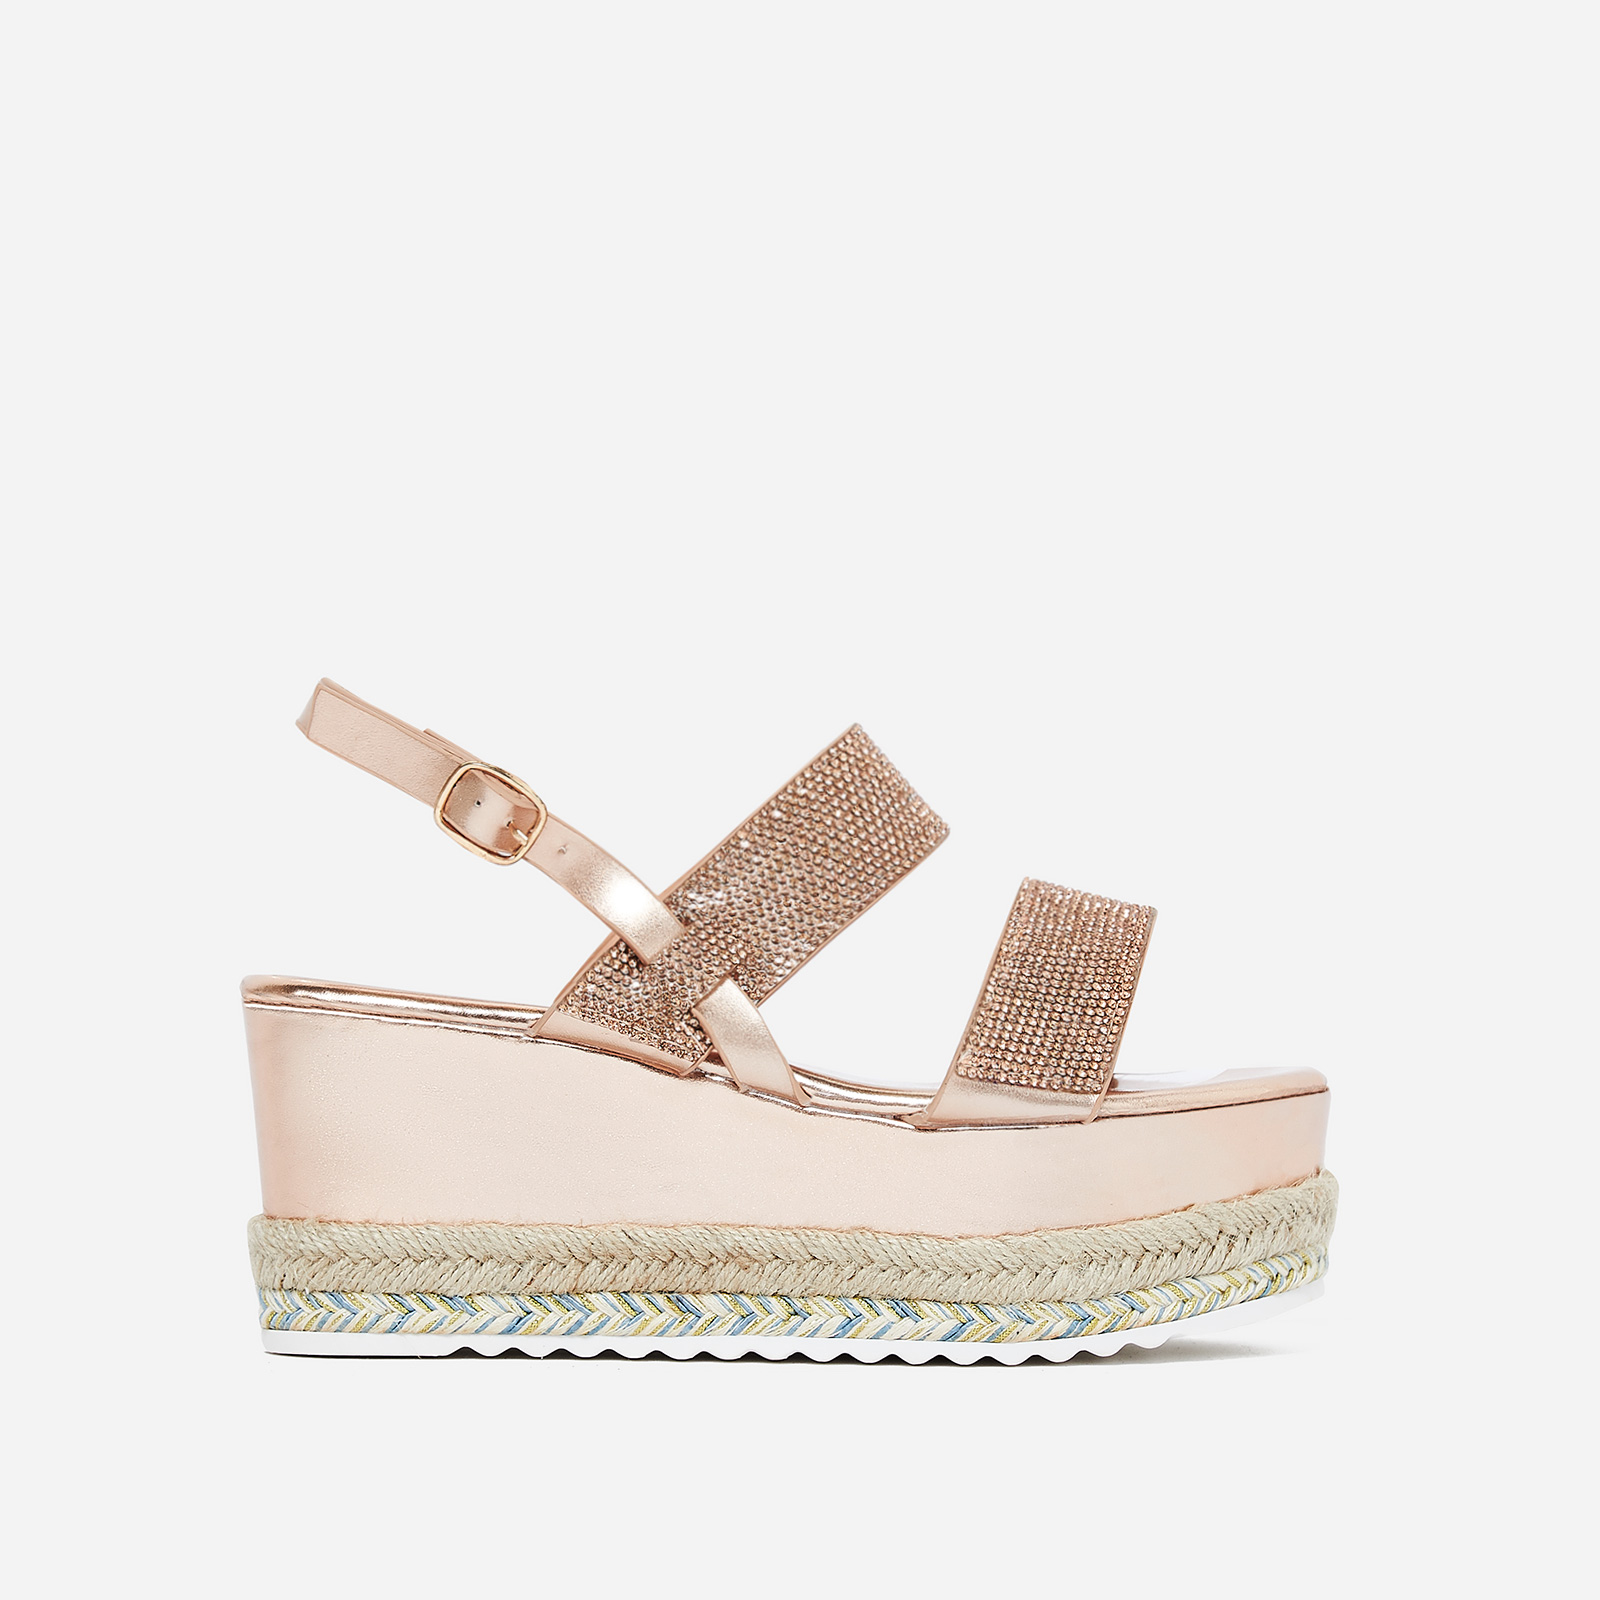 Jaina Diamante Flatform Espadrille Sandal In Rose Gold Faux Leather